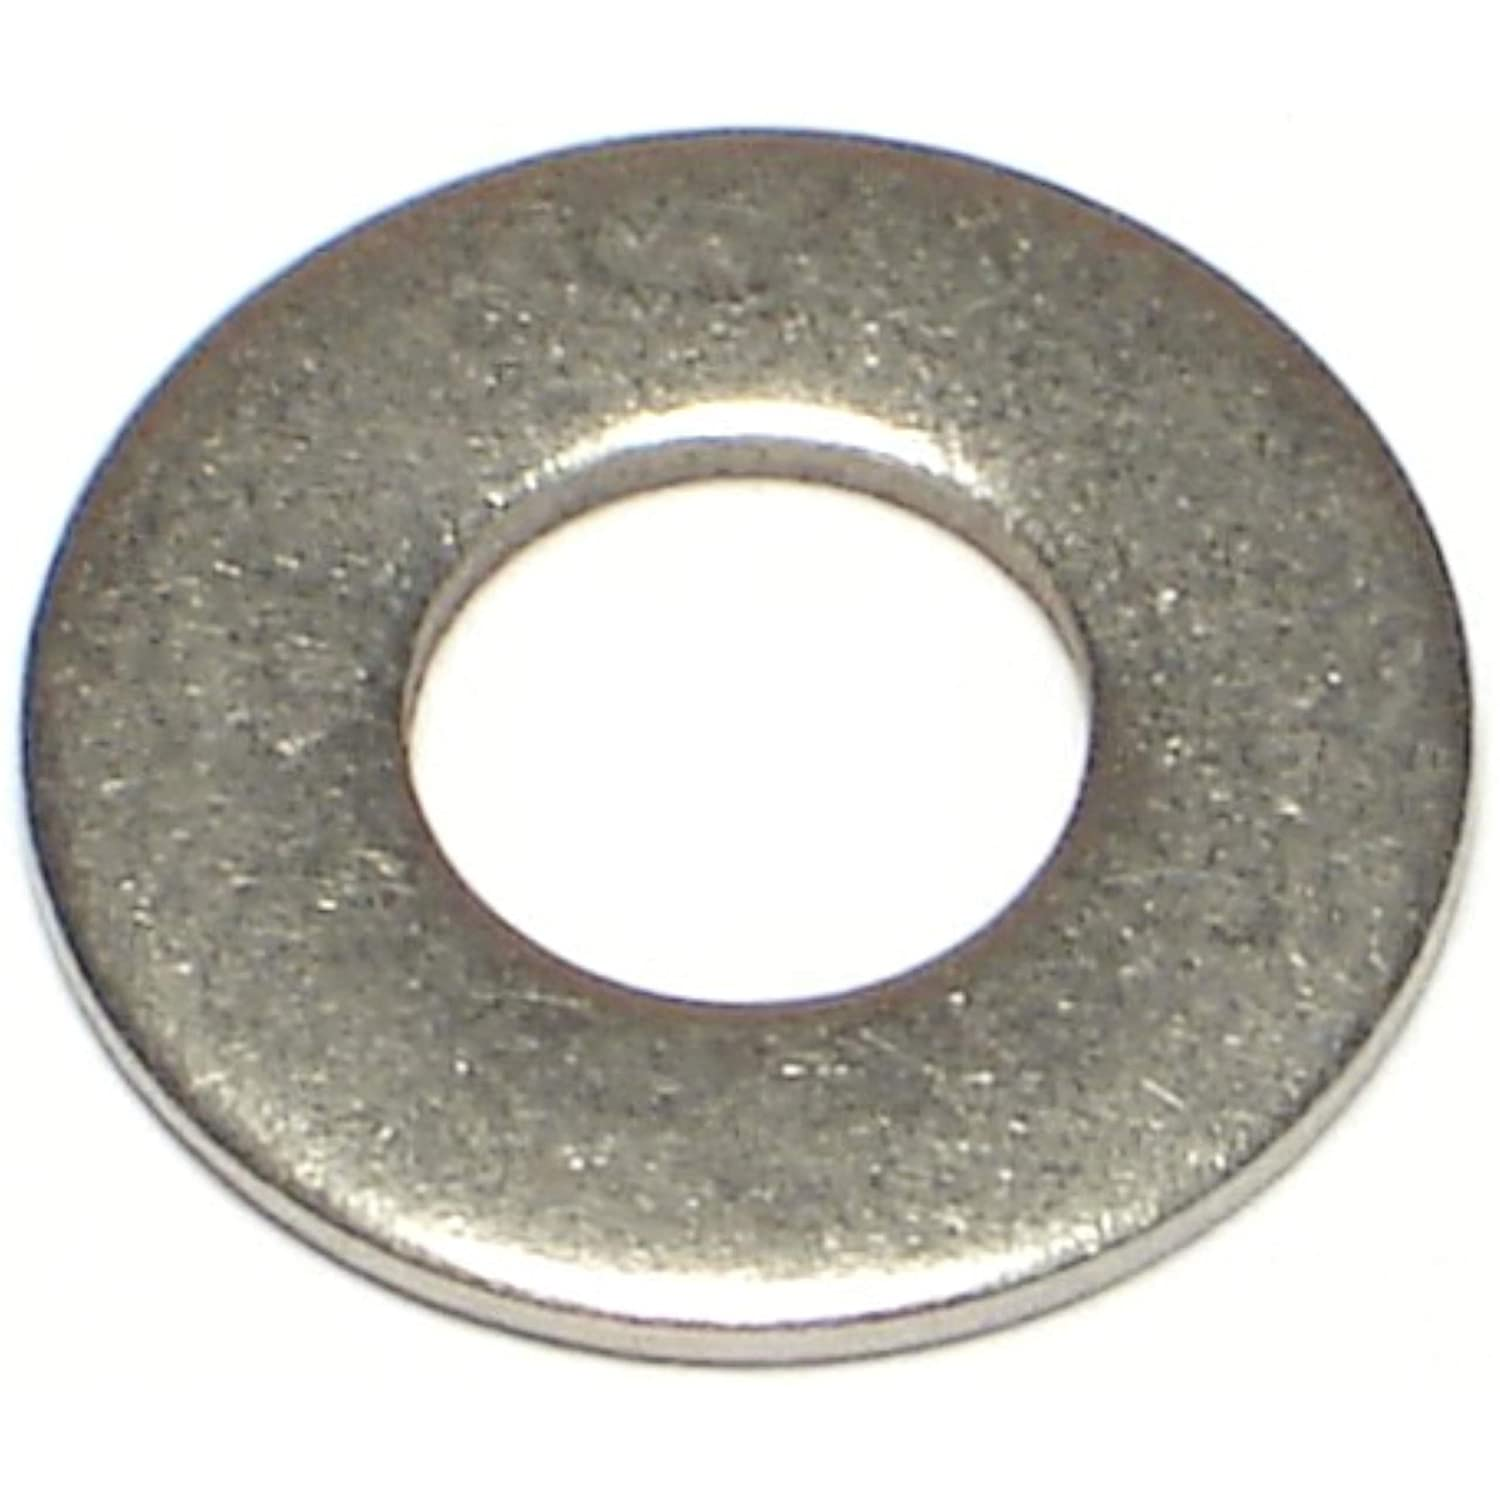 Piece-15 Hard-to-Find Fastener 014973210113 USS Flat Washers 5//16